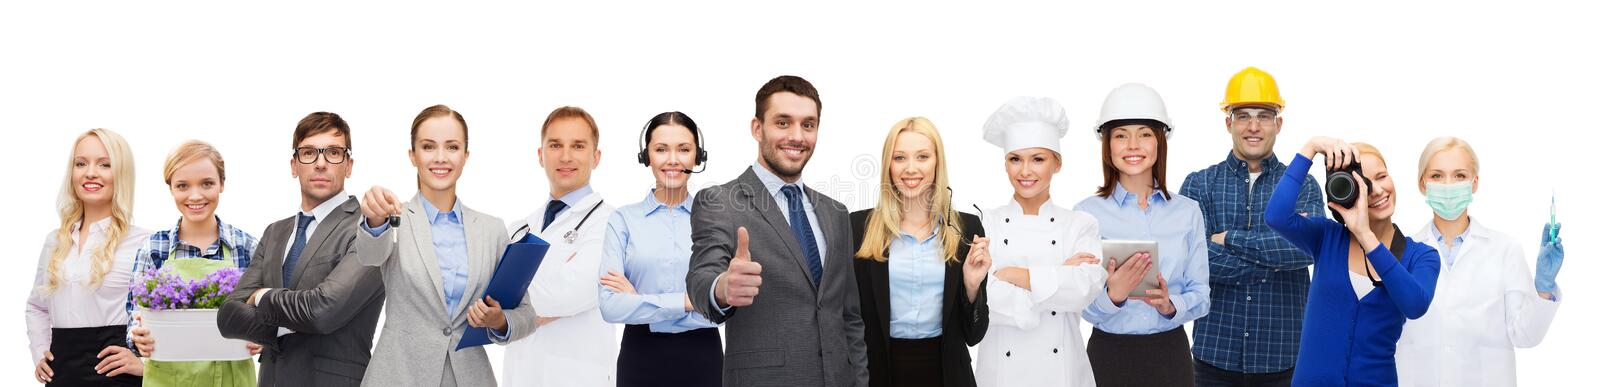 Happy businessman over professional workers stock photography